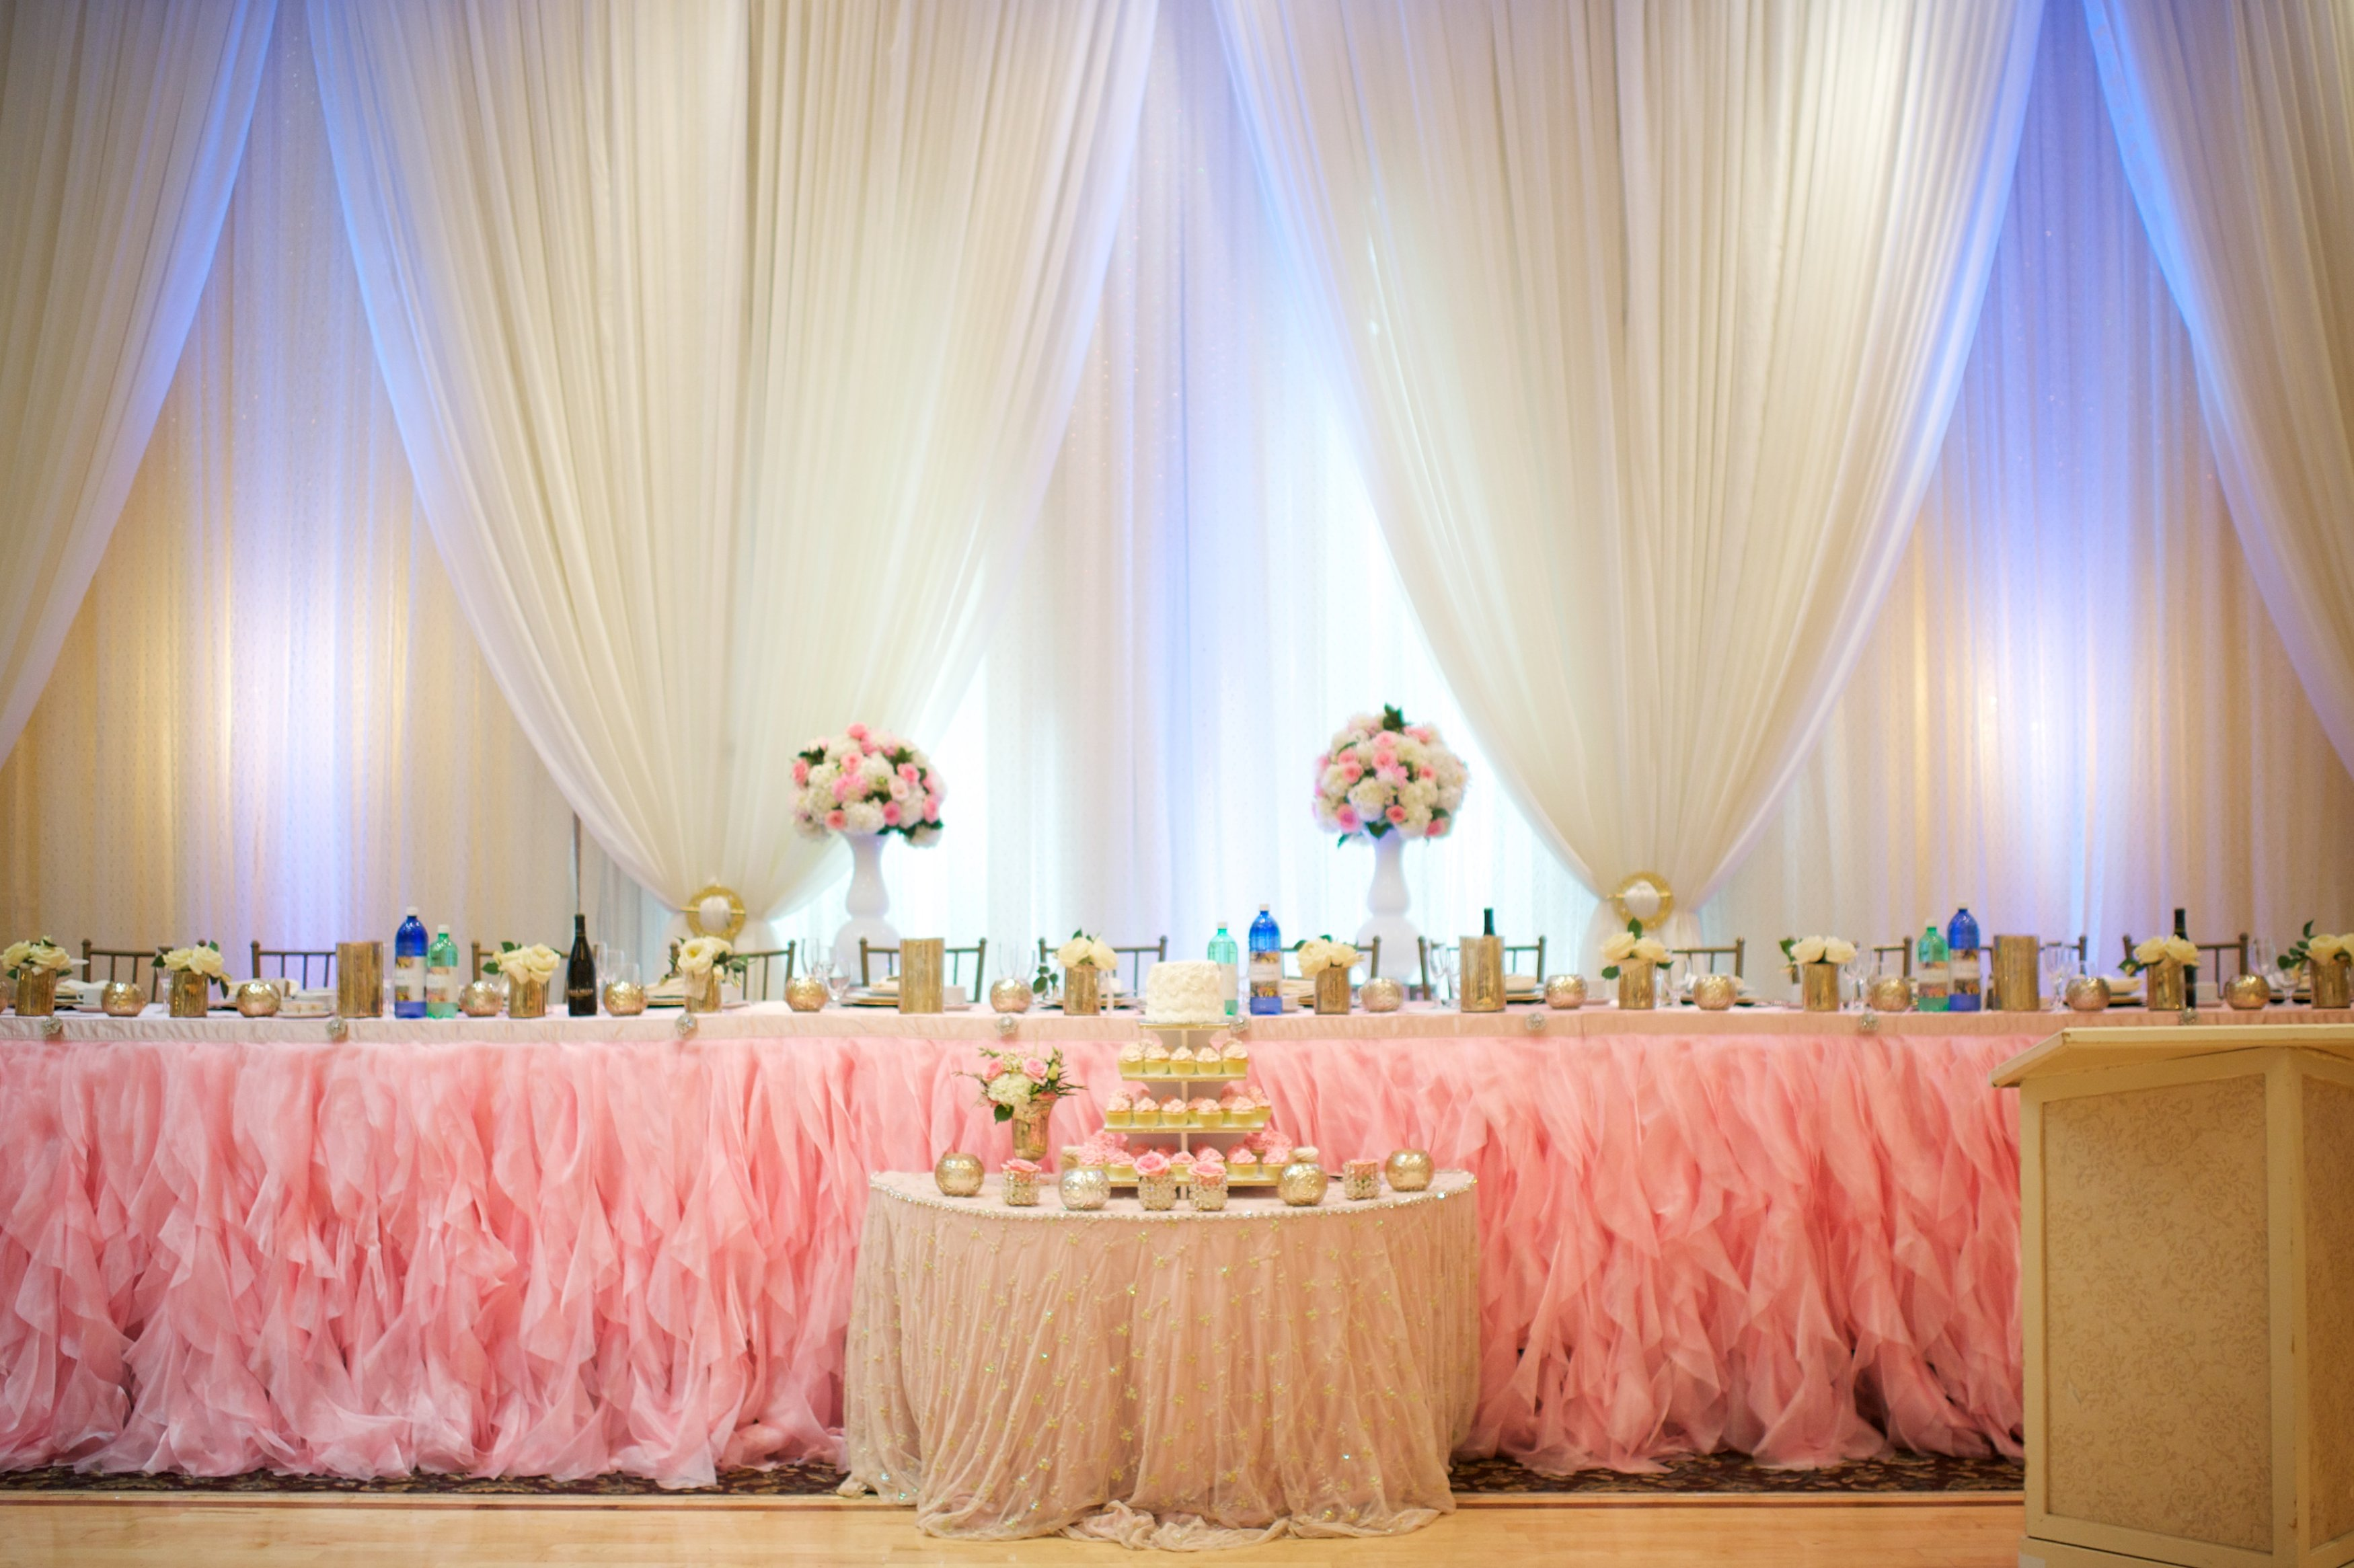 Wedding Backdrop Decorations Toronto